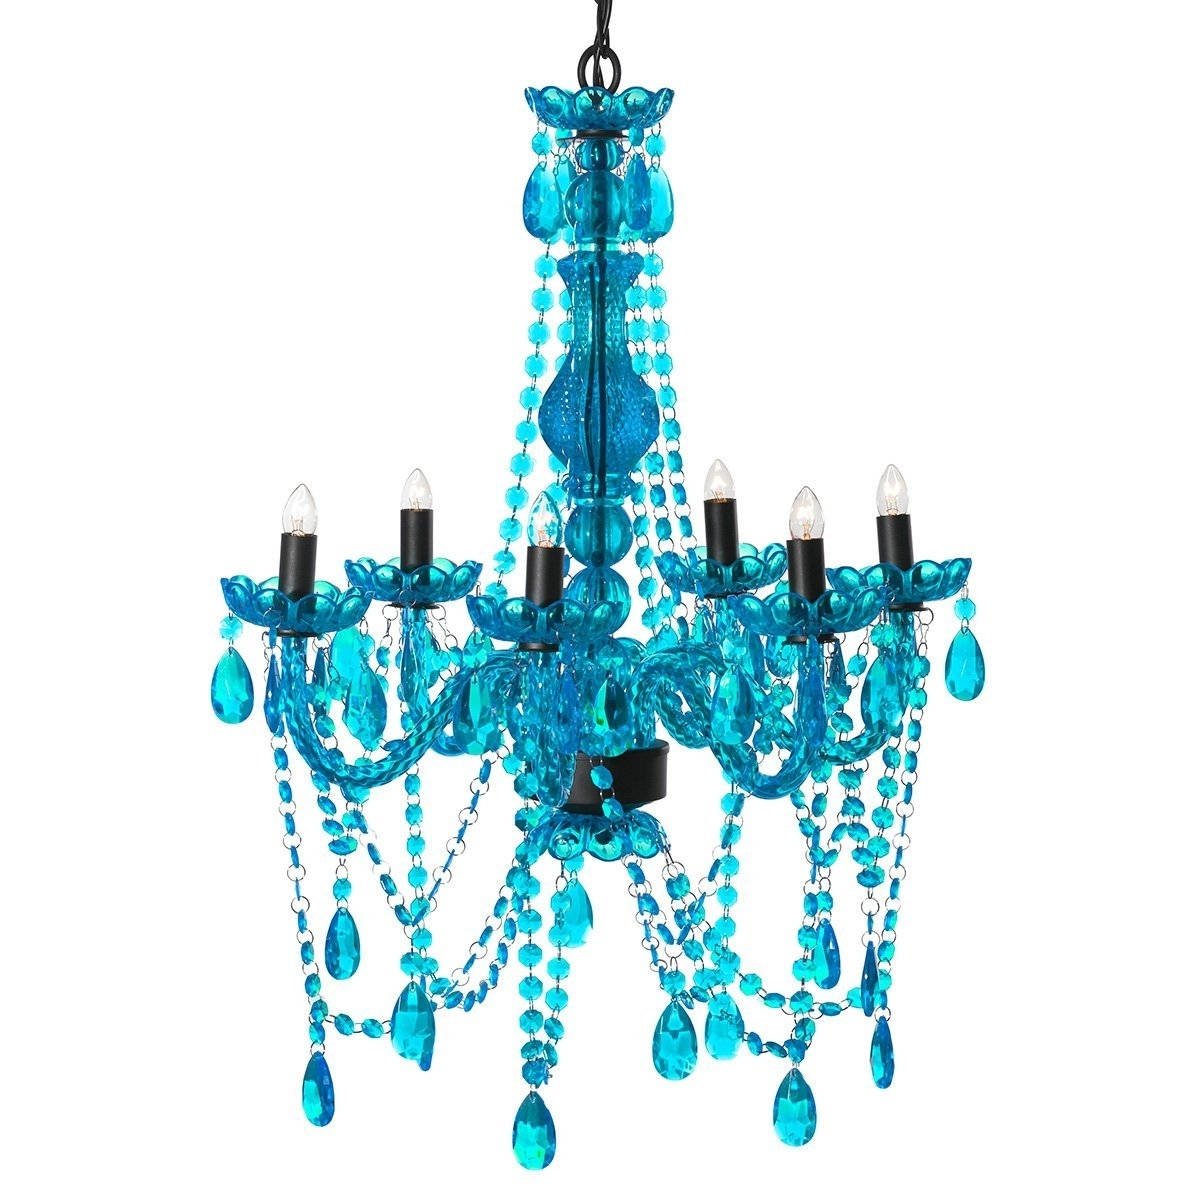 Amazon: 3C4G Chandelier, Turquoise: Home & Kitchen Within Most Recent Turquoise Mini Chandeliers (View 1 of 15)